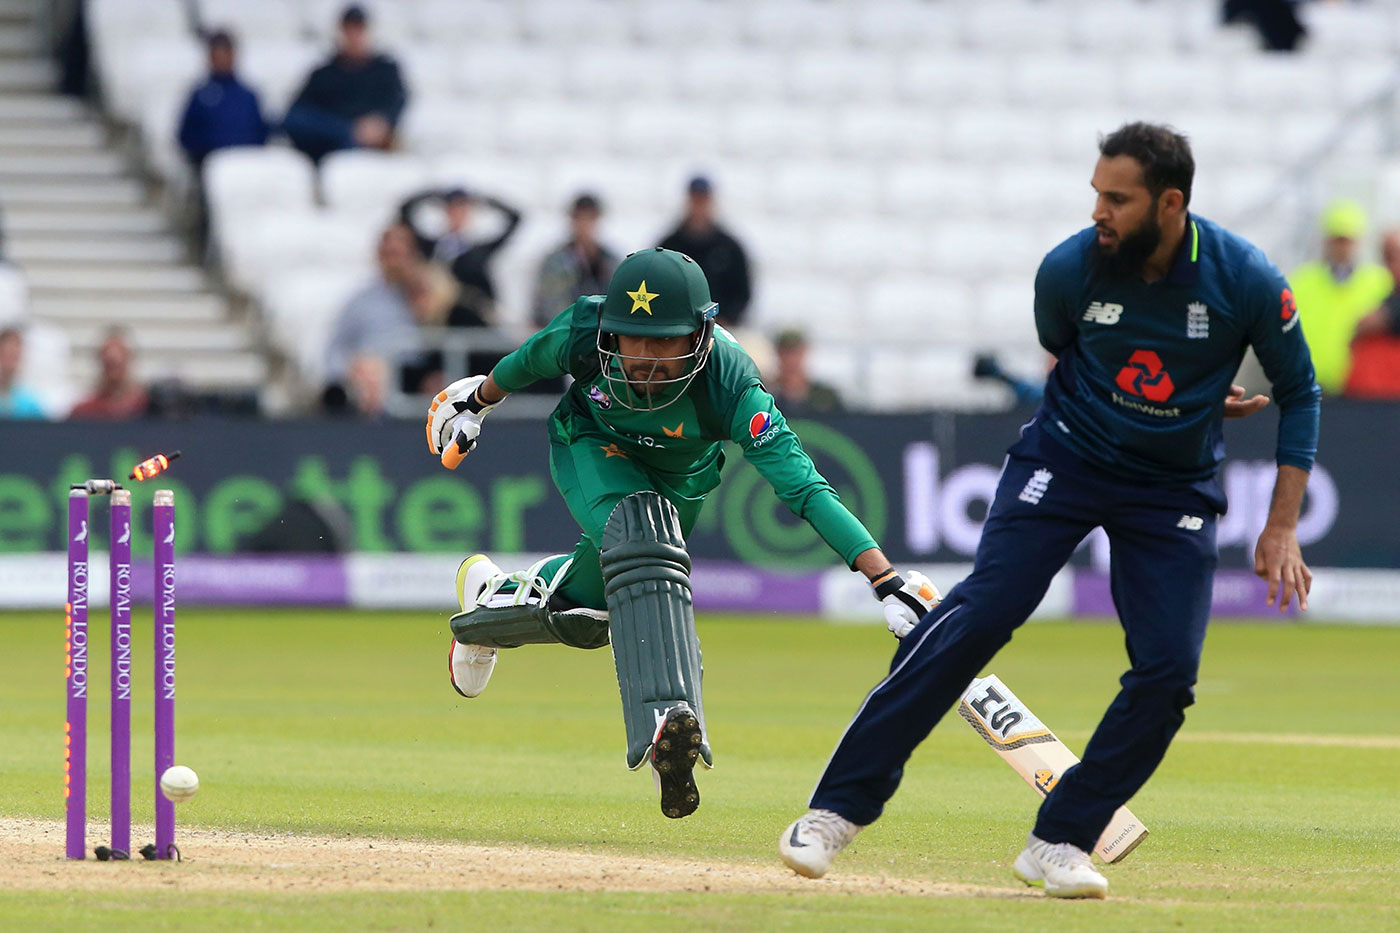 England defeat Pakistan by 54 runs in final ODI, win series 4-0